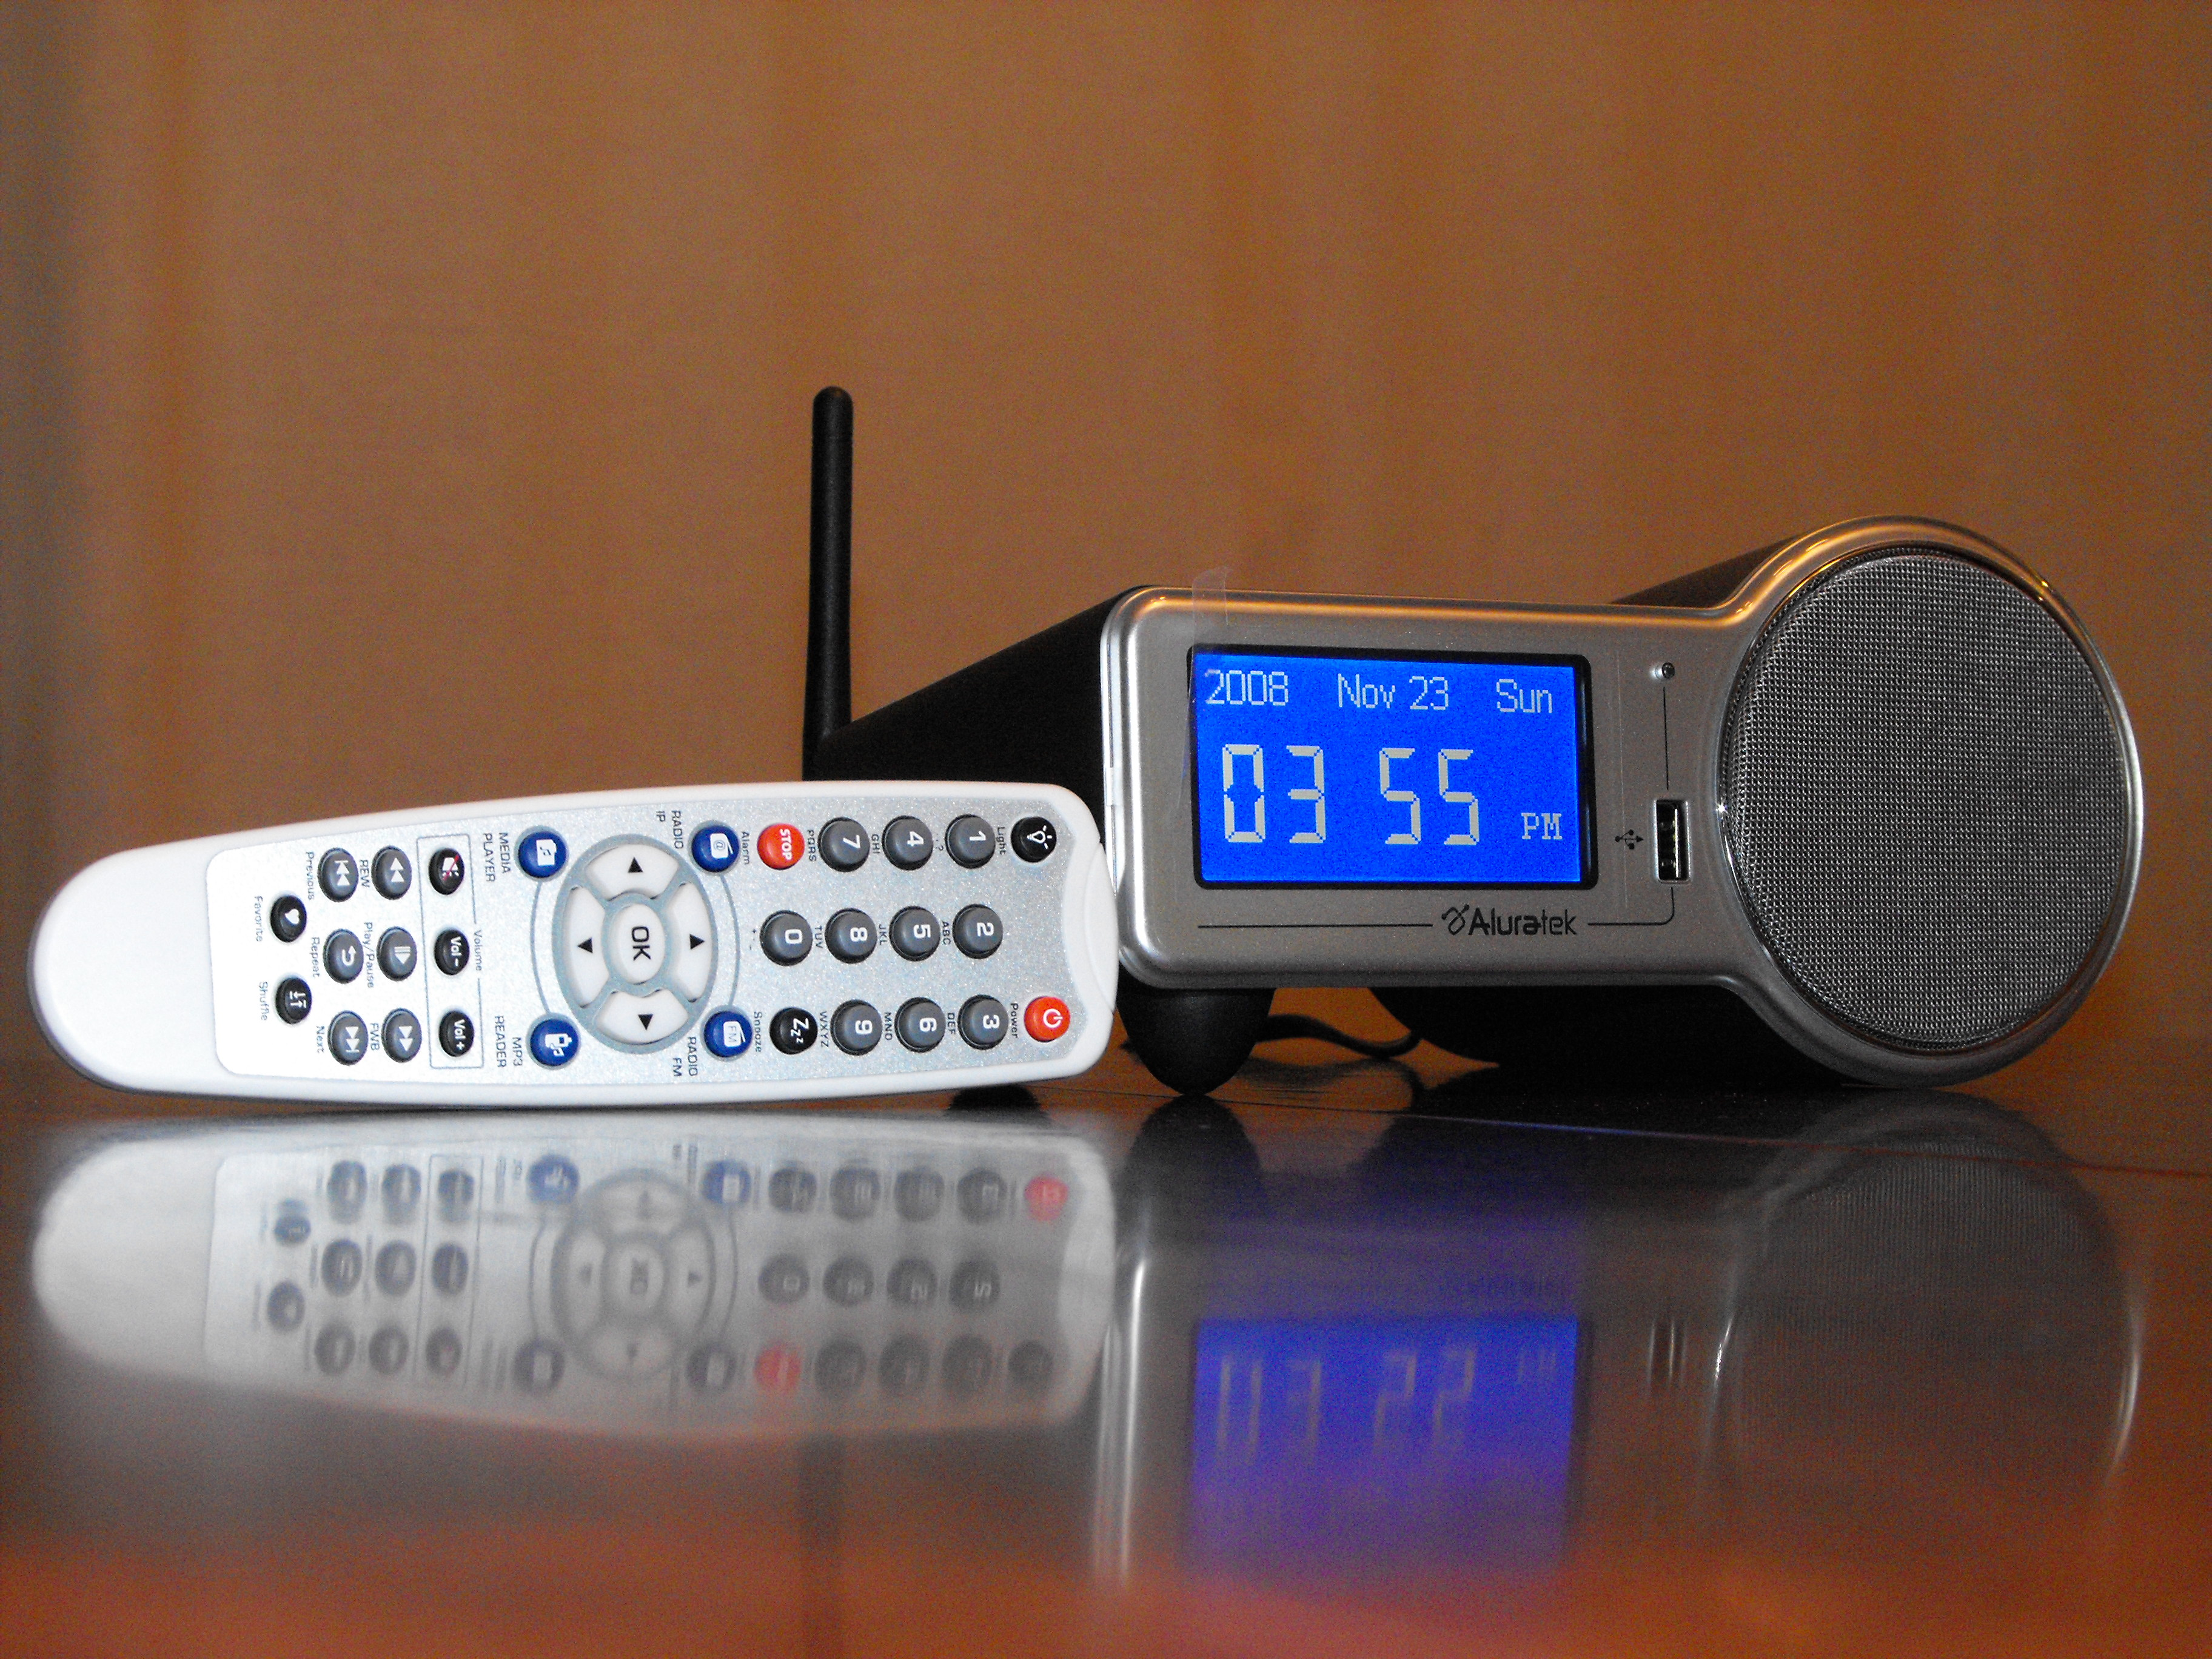 Aluratek+Internet+Radio+Alarm+Clock+with+Wi-Fi